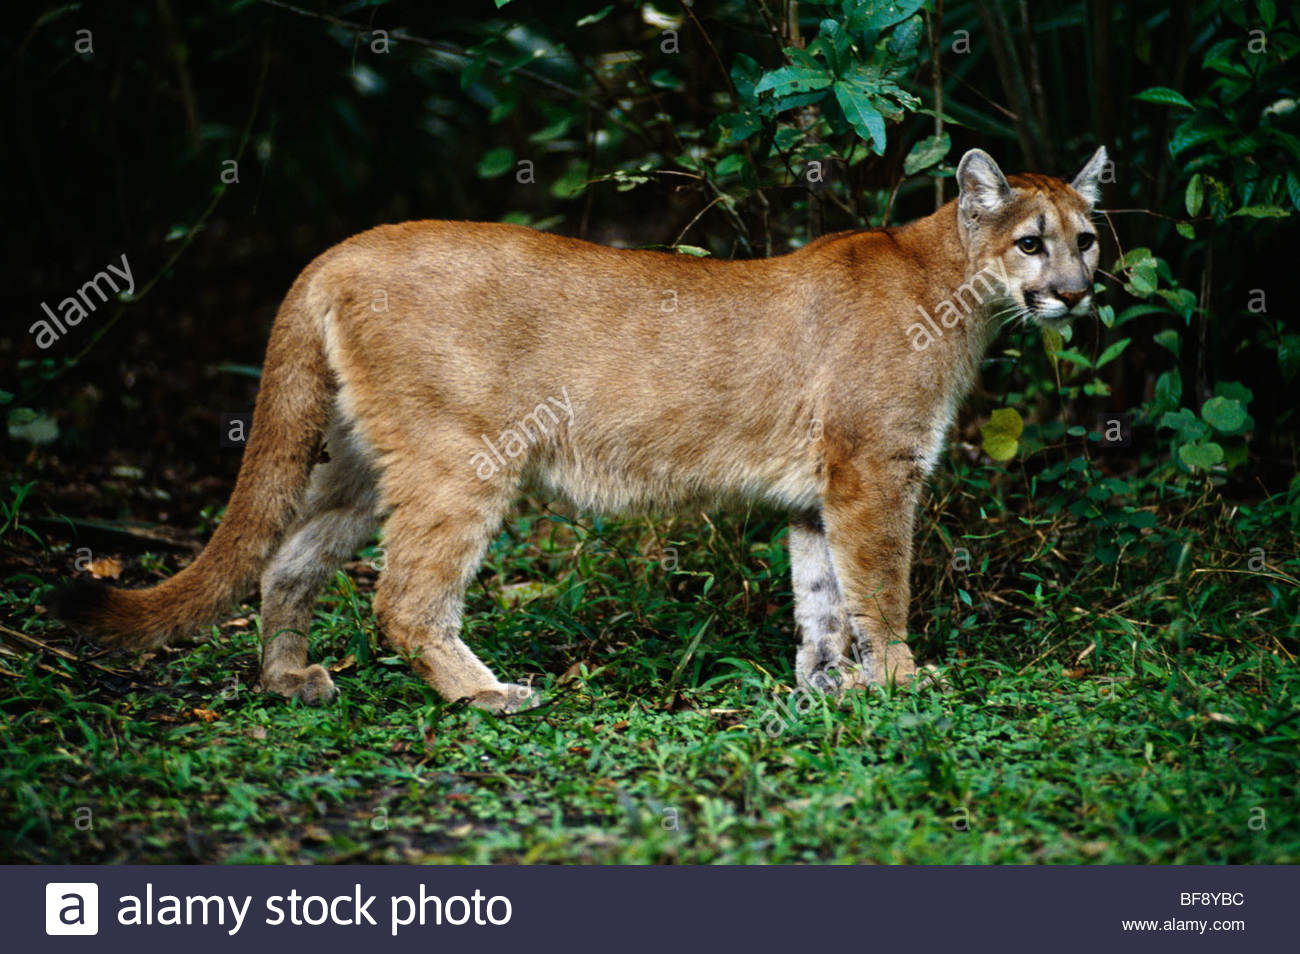 089dcb06472 Puma Concolor Stock Photos & Puma Concolor Stock Images - Alamy